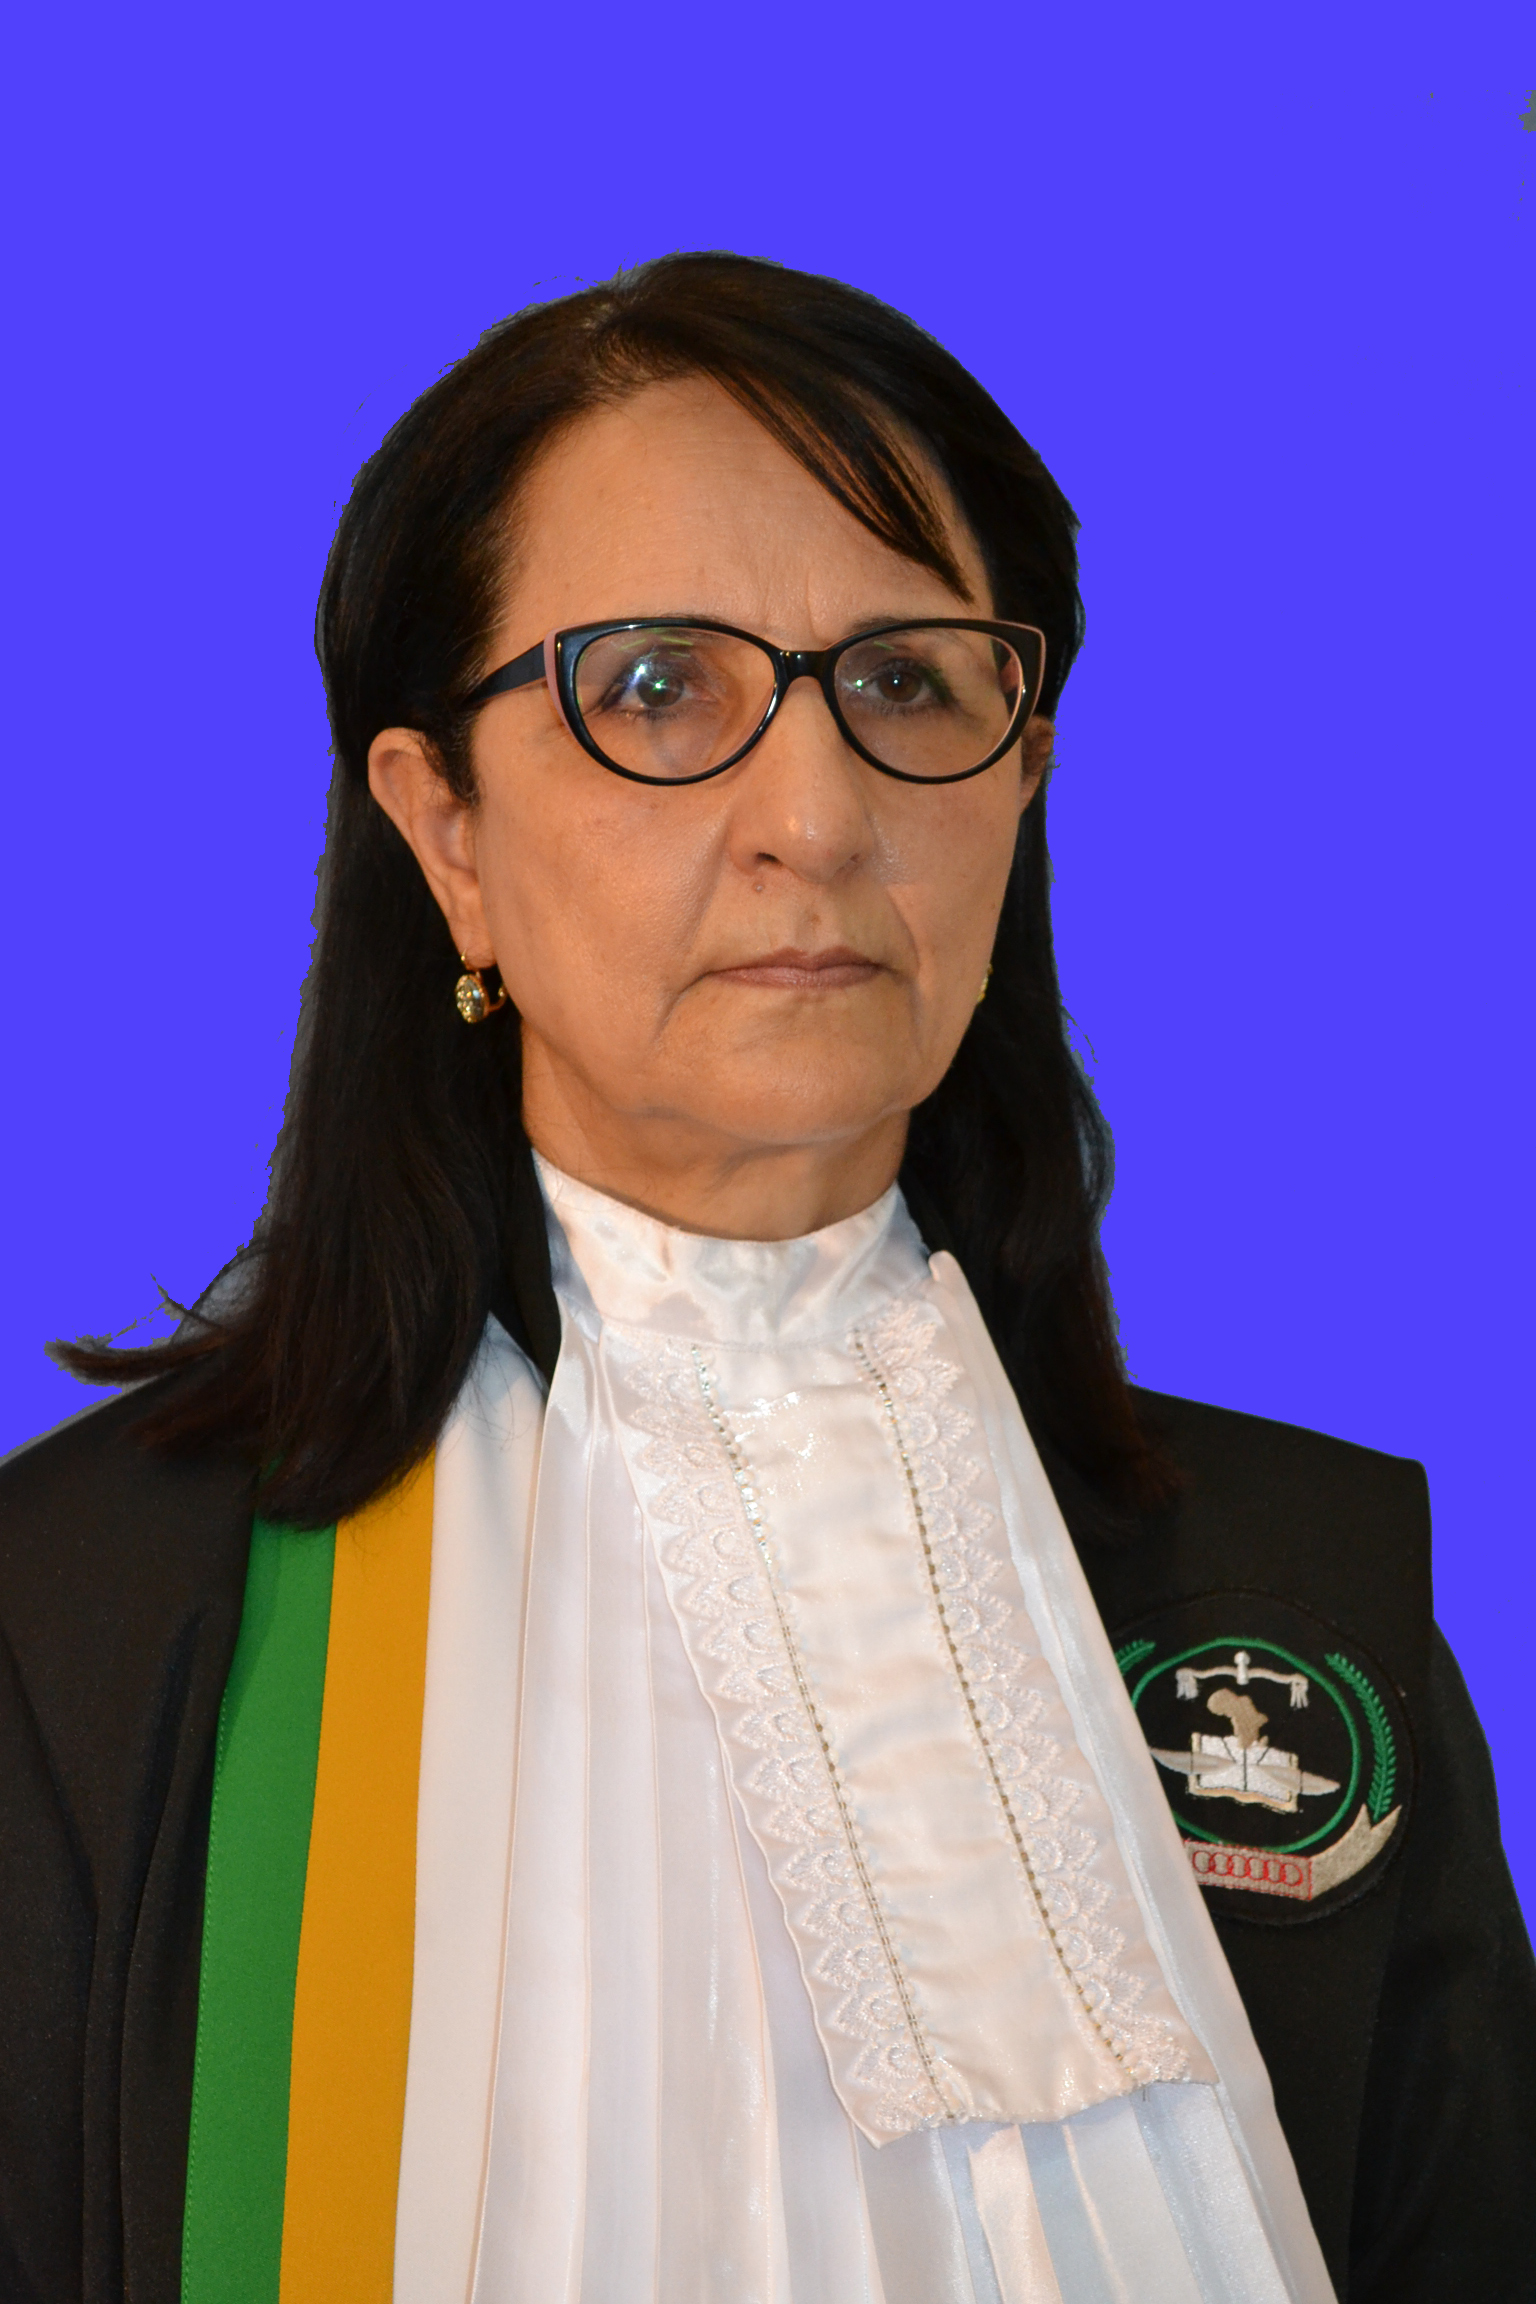 Judge Bensaoula